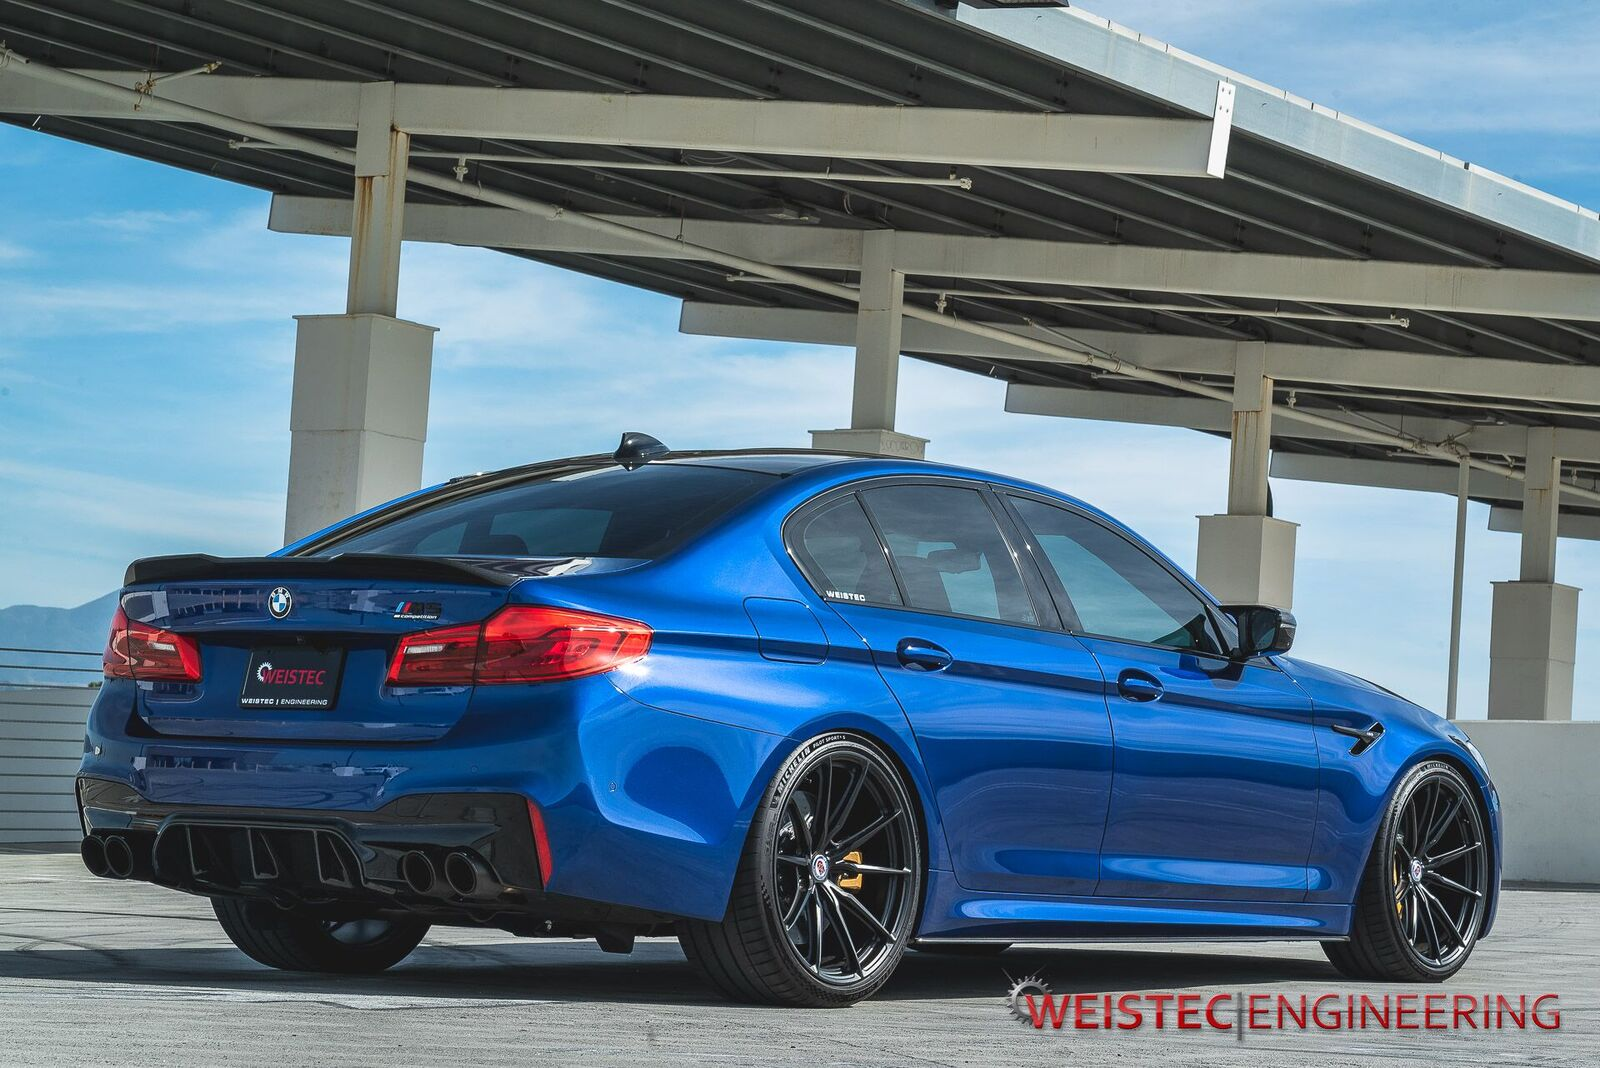 2020 Bmw M5 Competition 1 4 Mile Drag Racing Timeslip Specs 0 60 Dragtimes Com